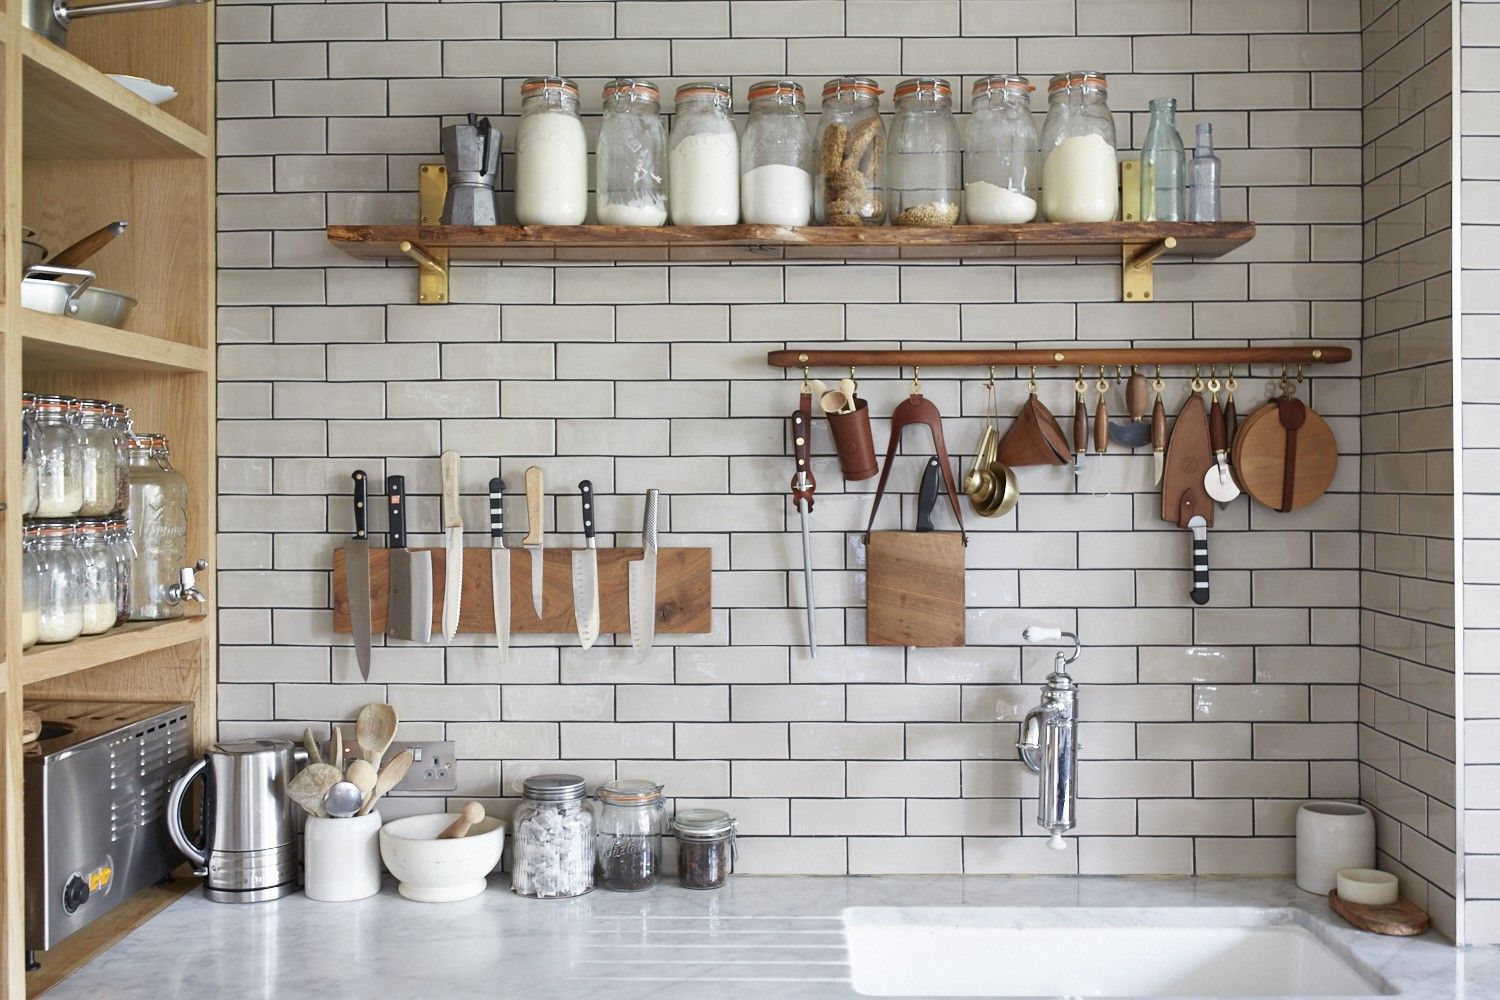 7 Clever Kitchen Spring Clean Hacks U2014 So Easy, You Wish Youu0027d Done Them  Sooner